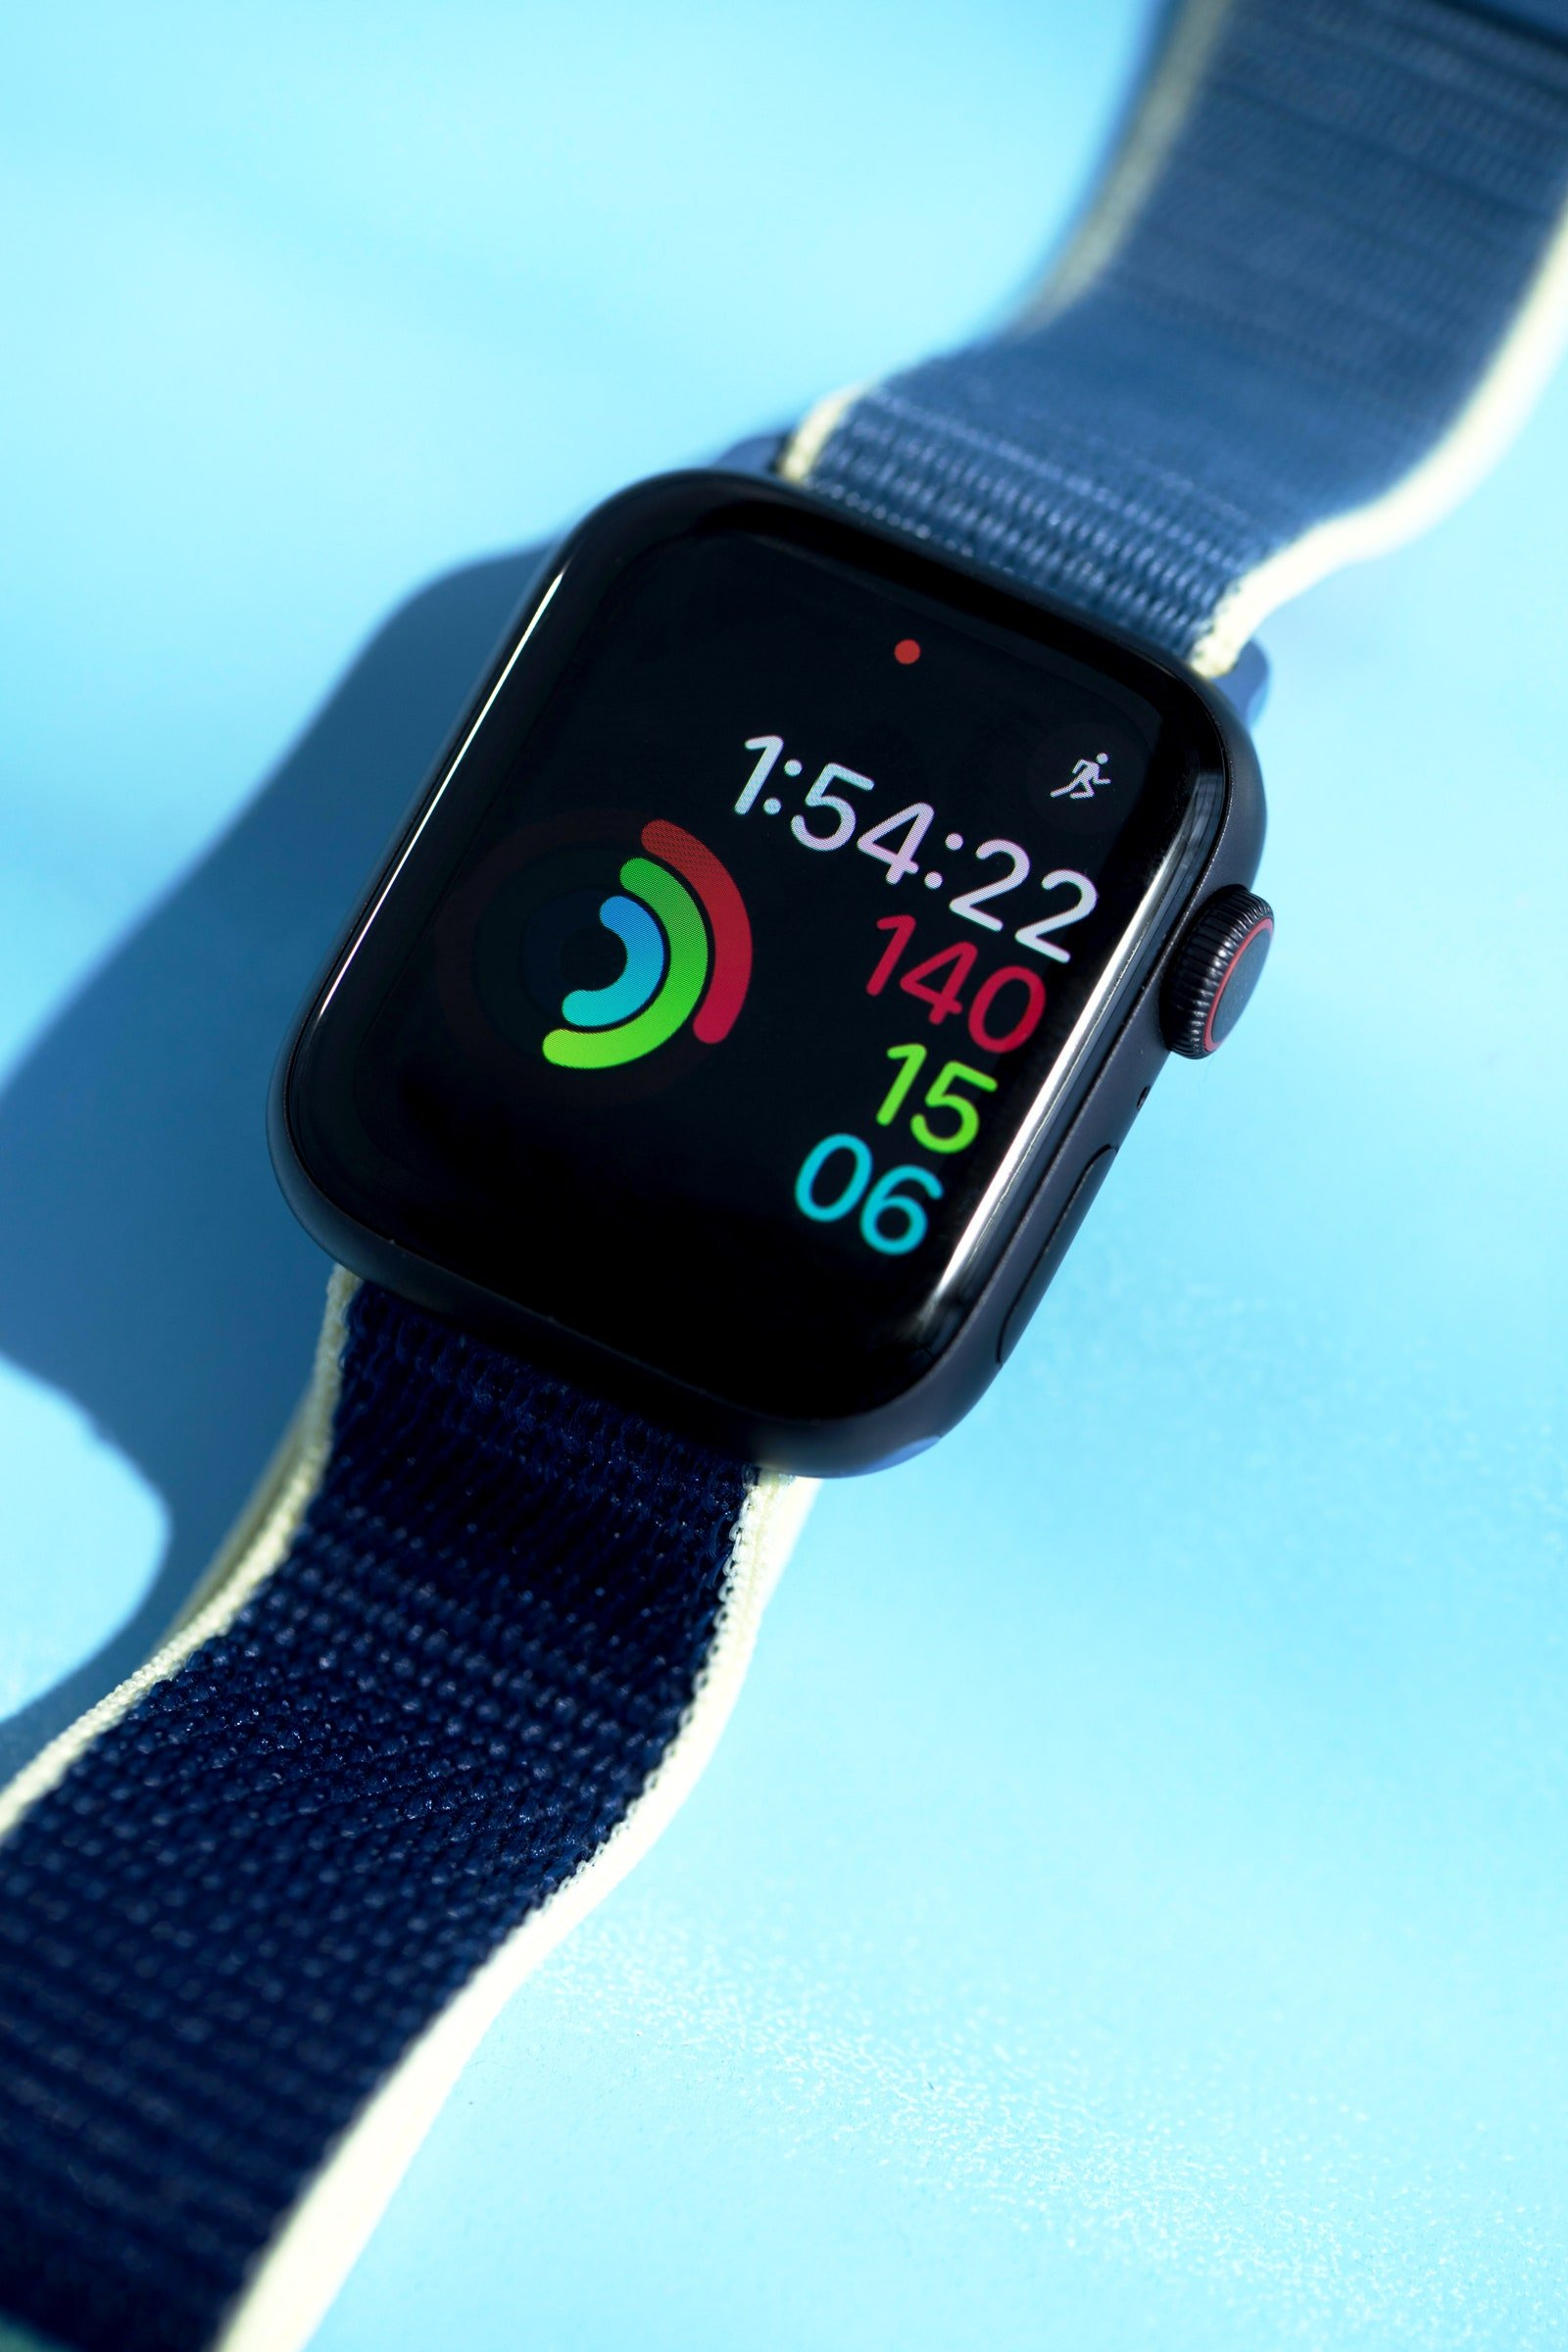 Apple is the largest seller of wearables thanks to the Apple Watch Series 3